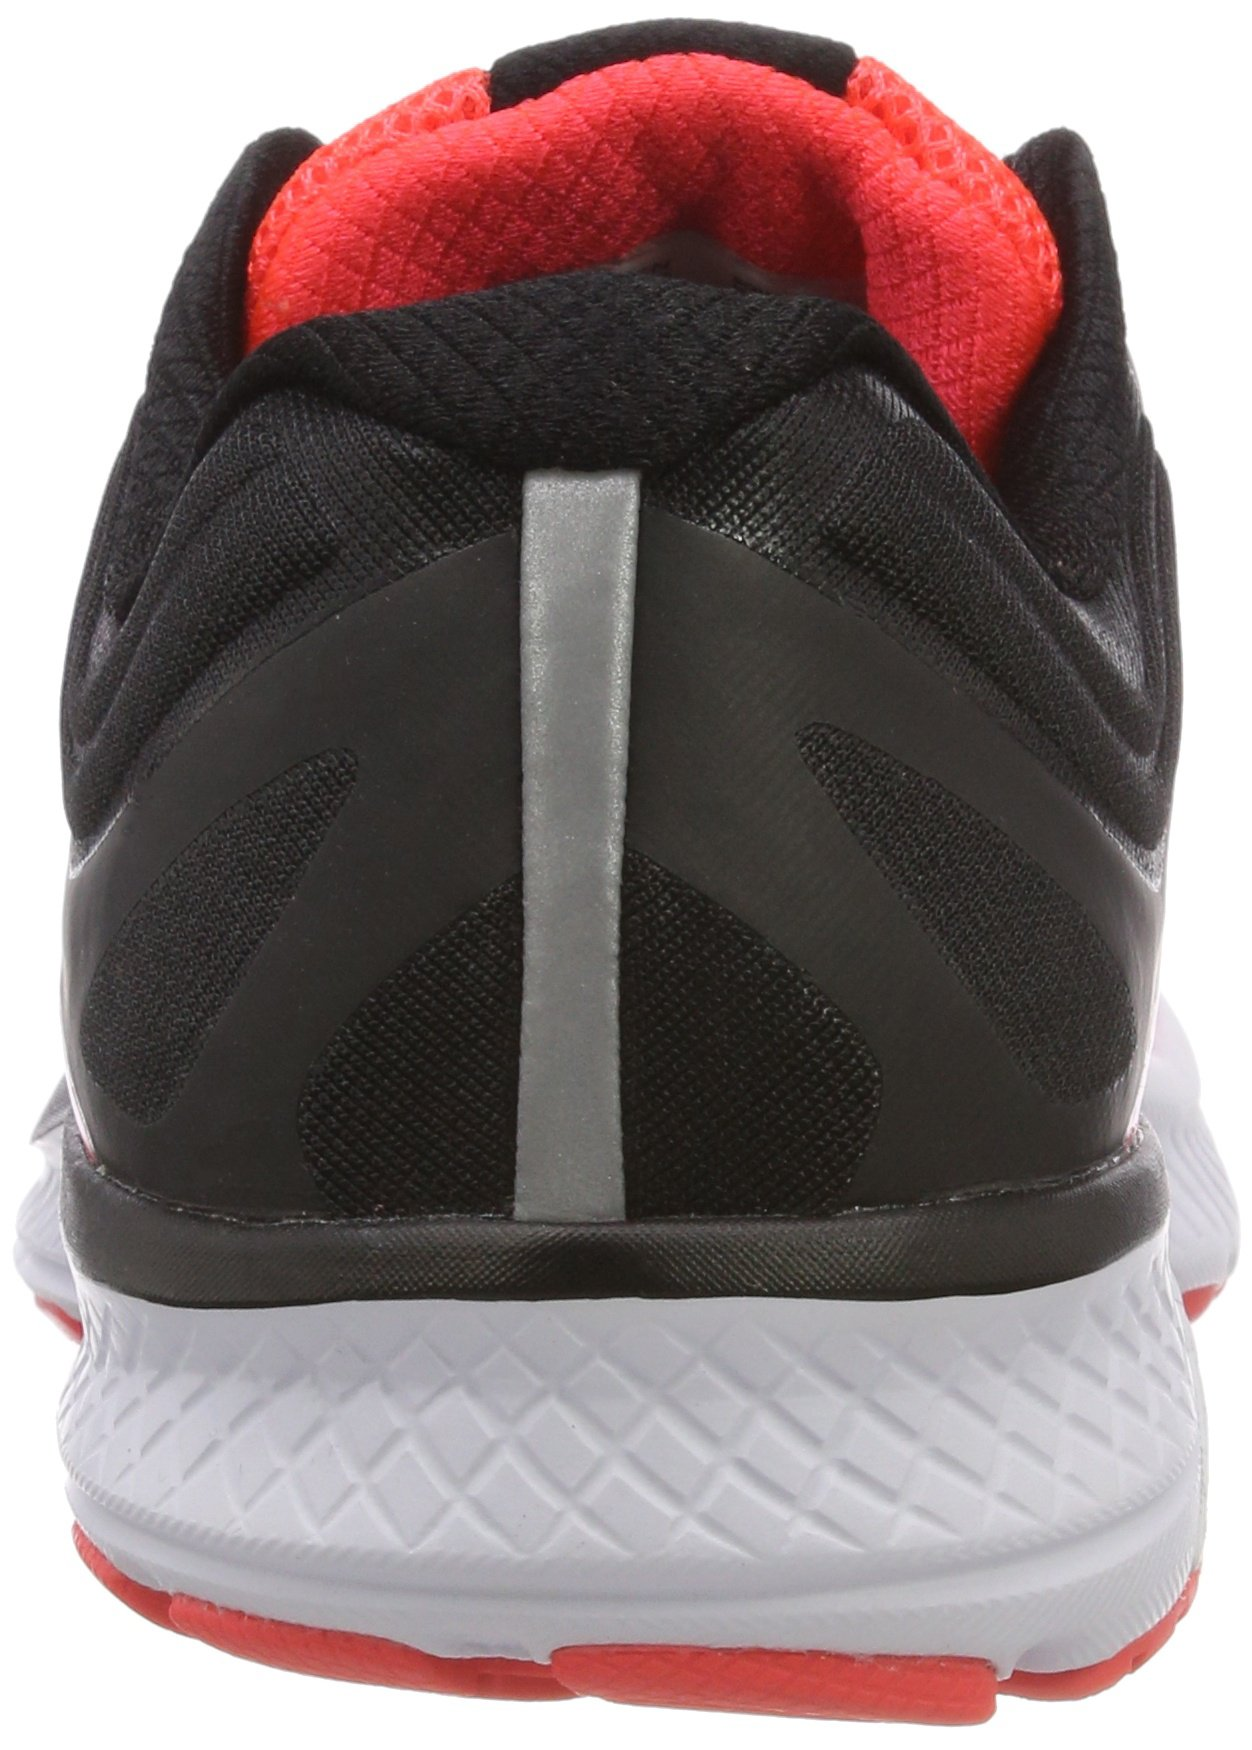 71v3ccCl%2BpL - Saucony Women's Guide Iso Competition Running Shoes